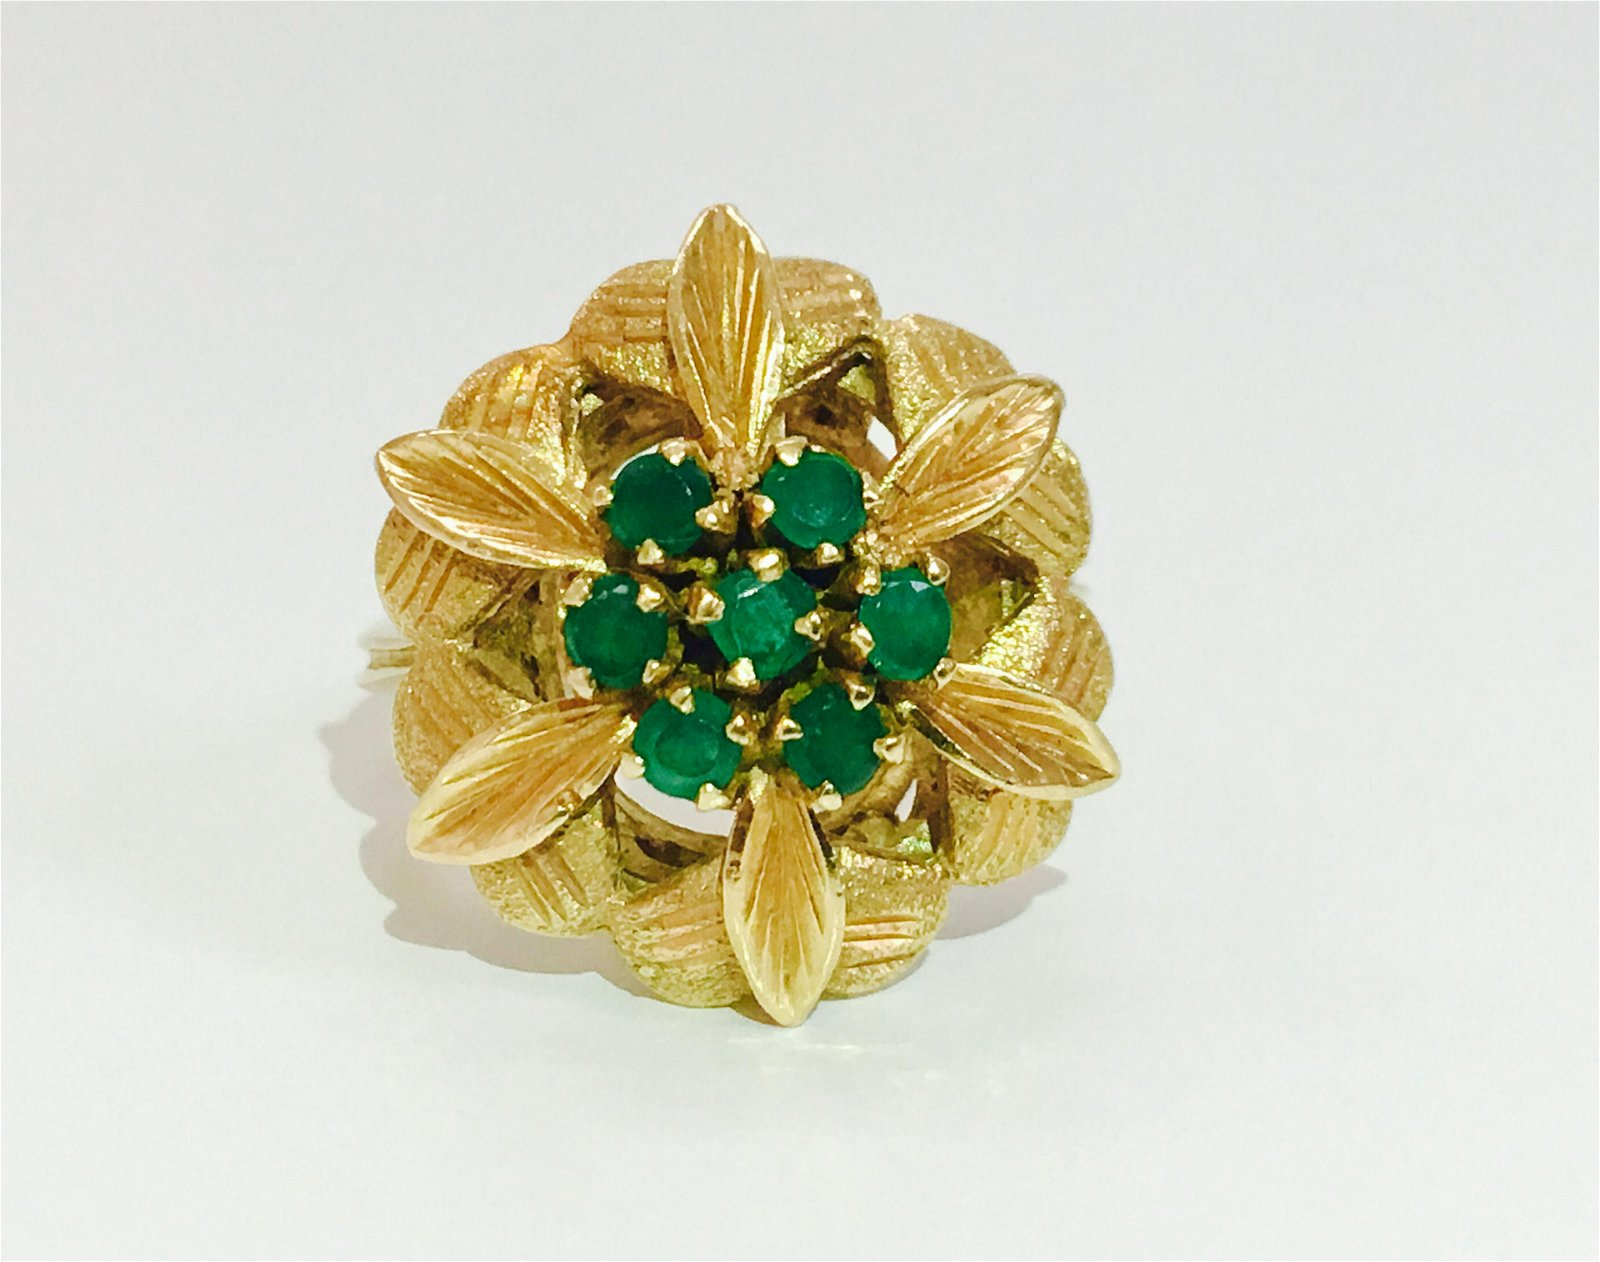 Colombian Emeralds in 18K yellow gold ring. *VINTAGE*